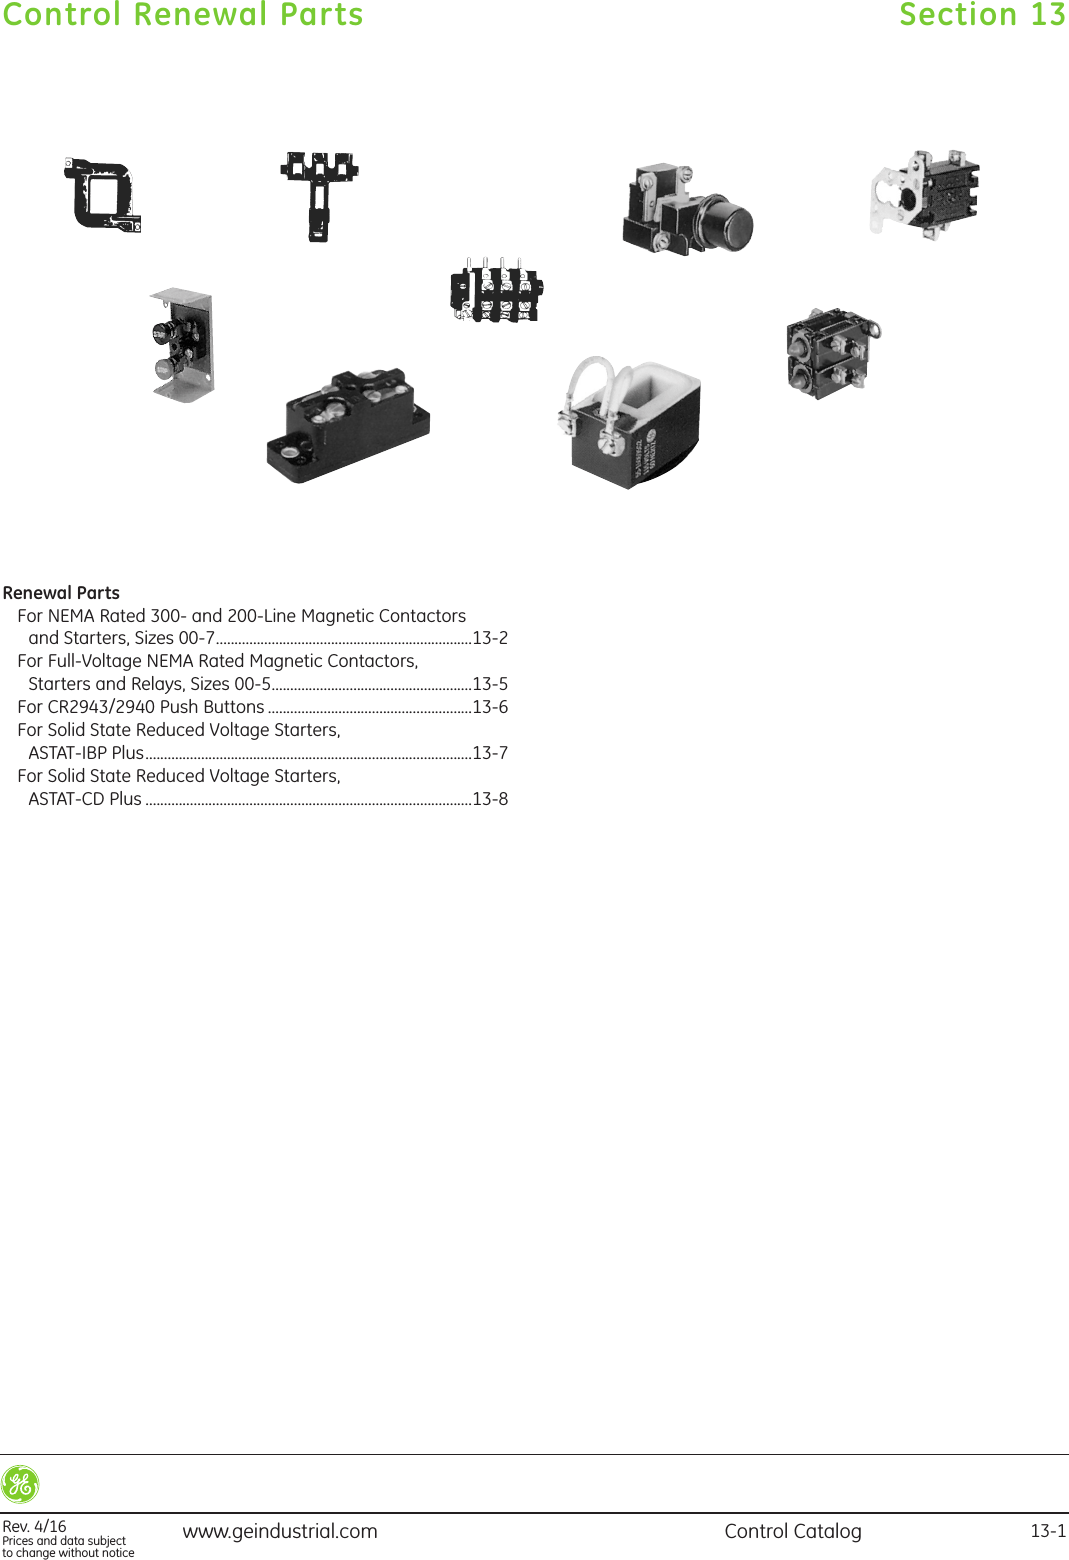 GE Control Catalog Section 14 Brochure